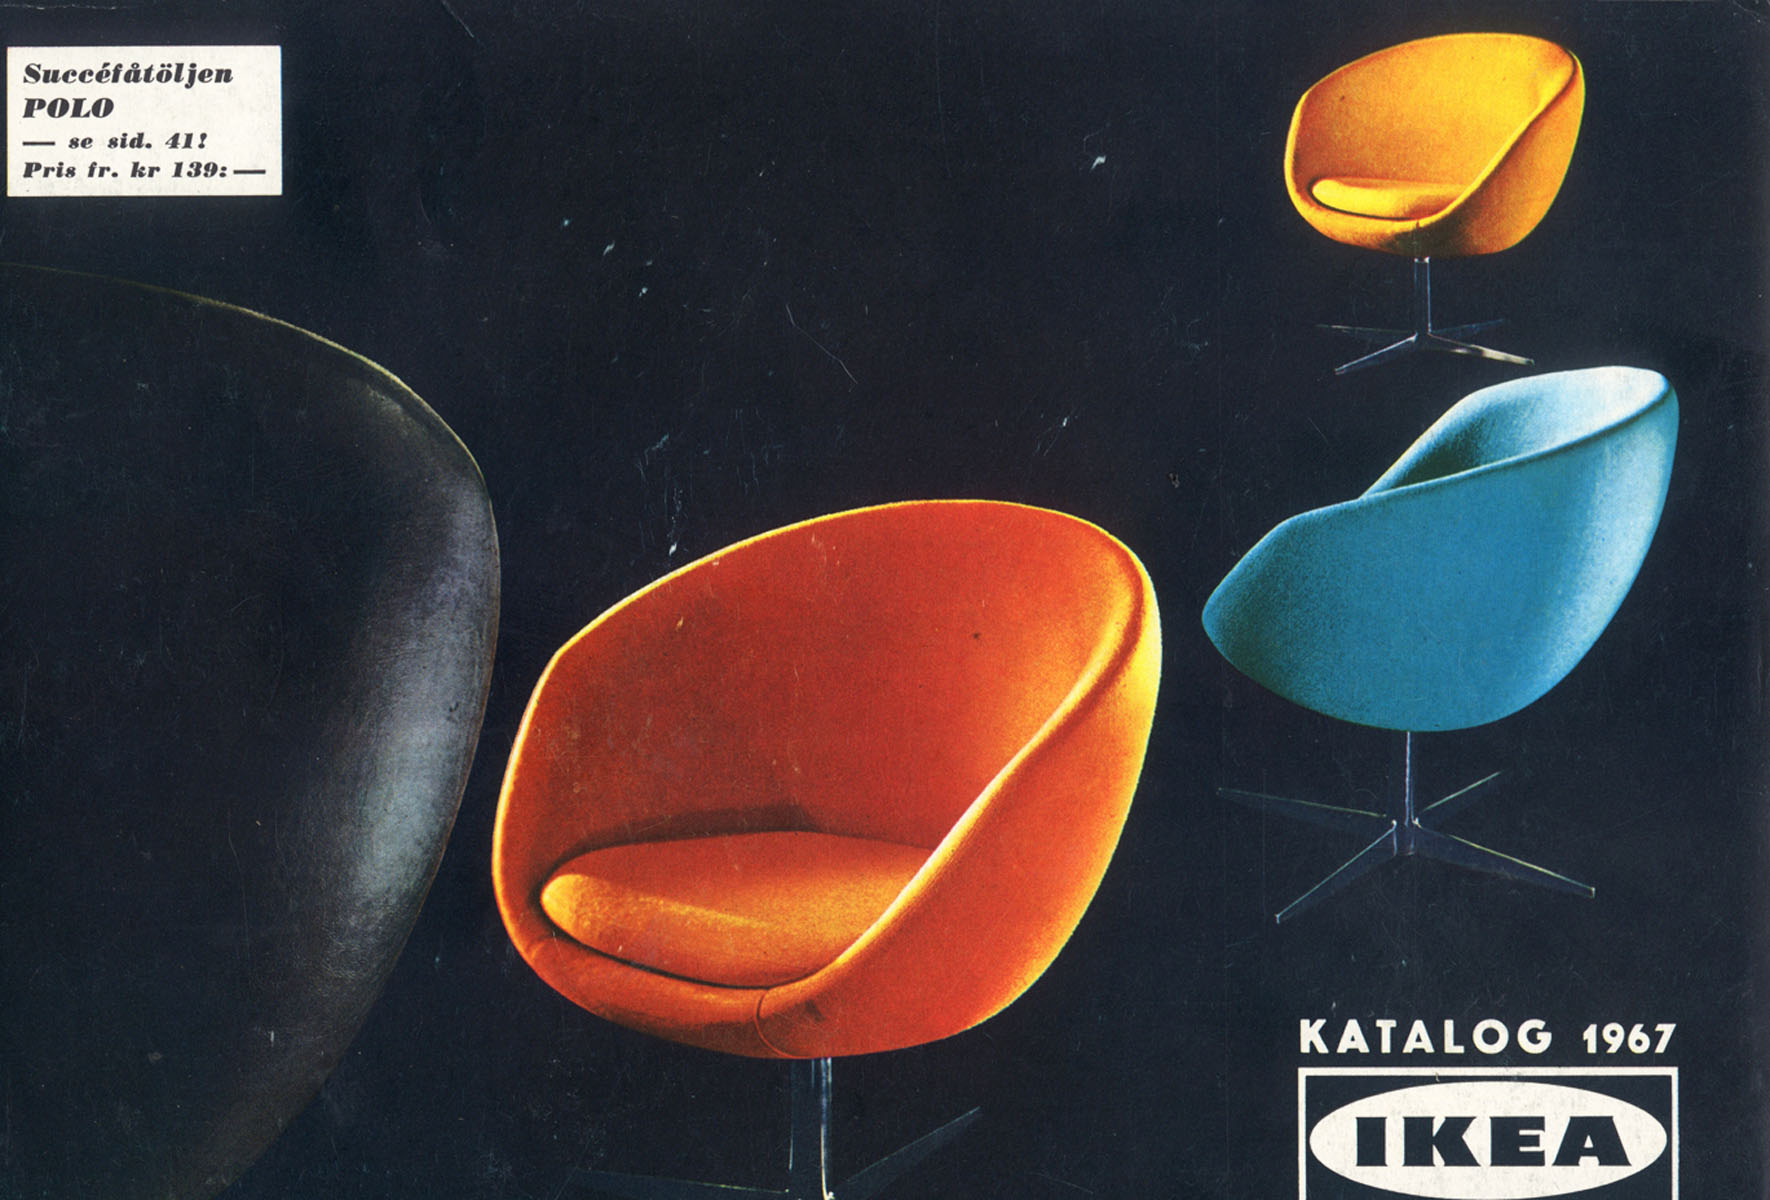 Ikea 1967 Catalog Interior Design Ideas